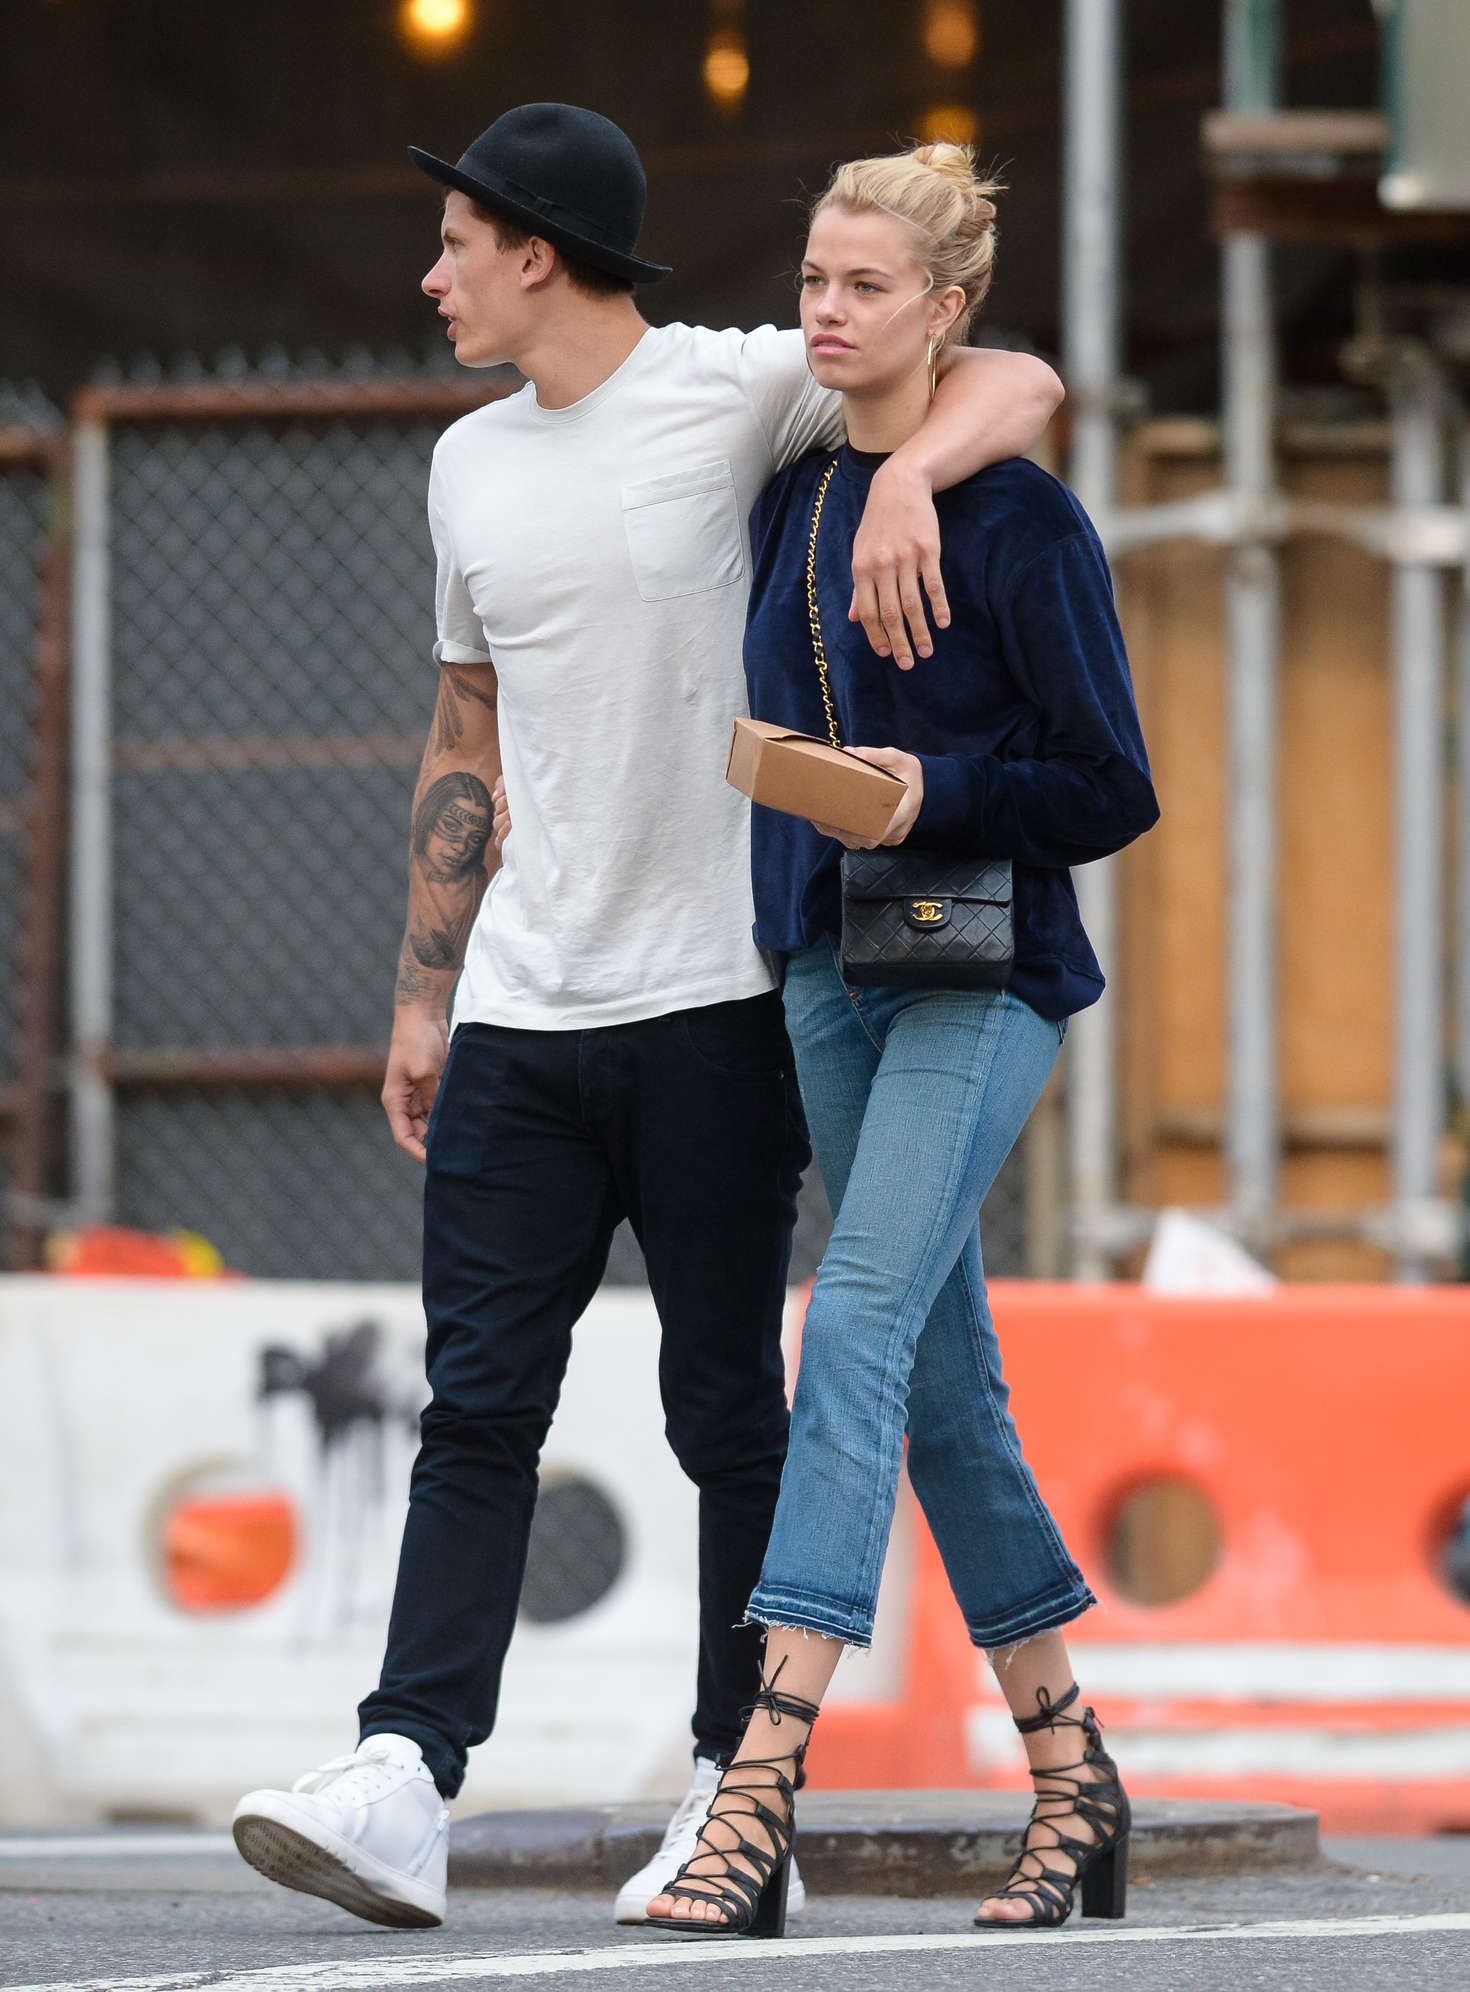 Hailey Clauson with boyfriend out in New York